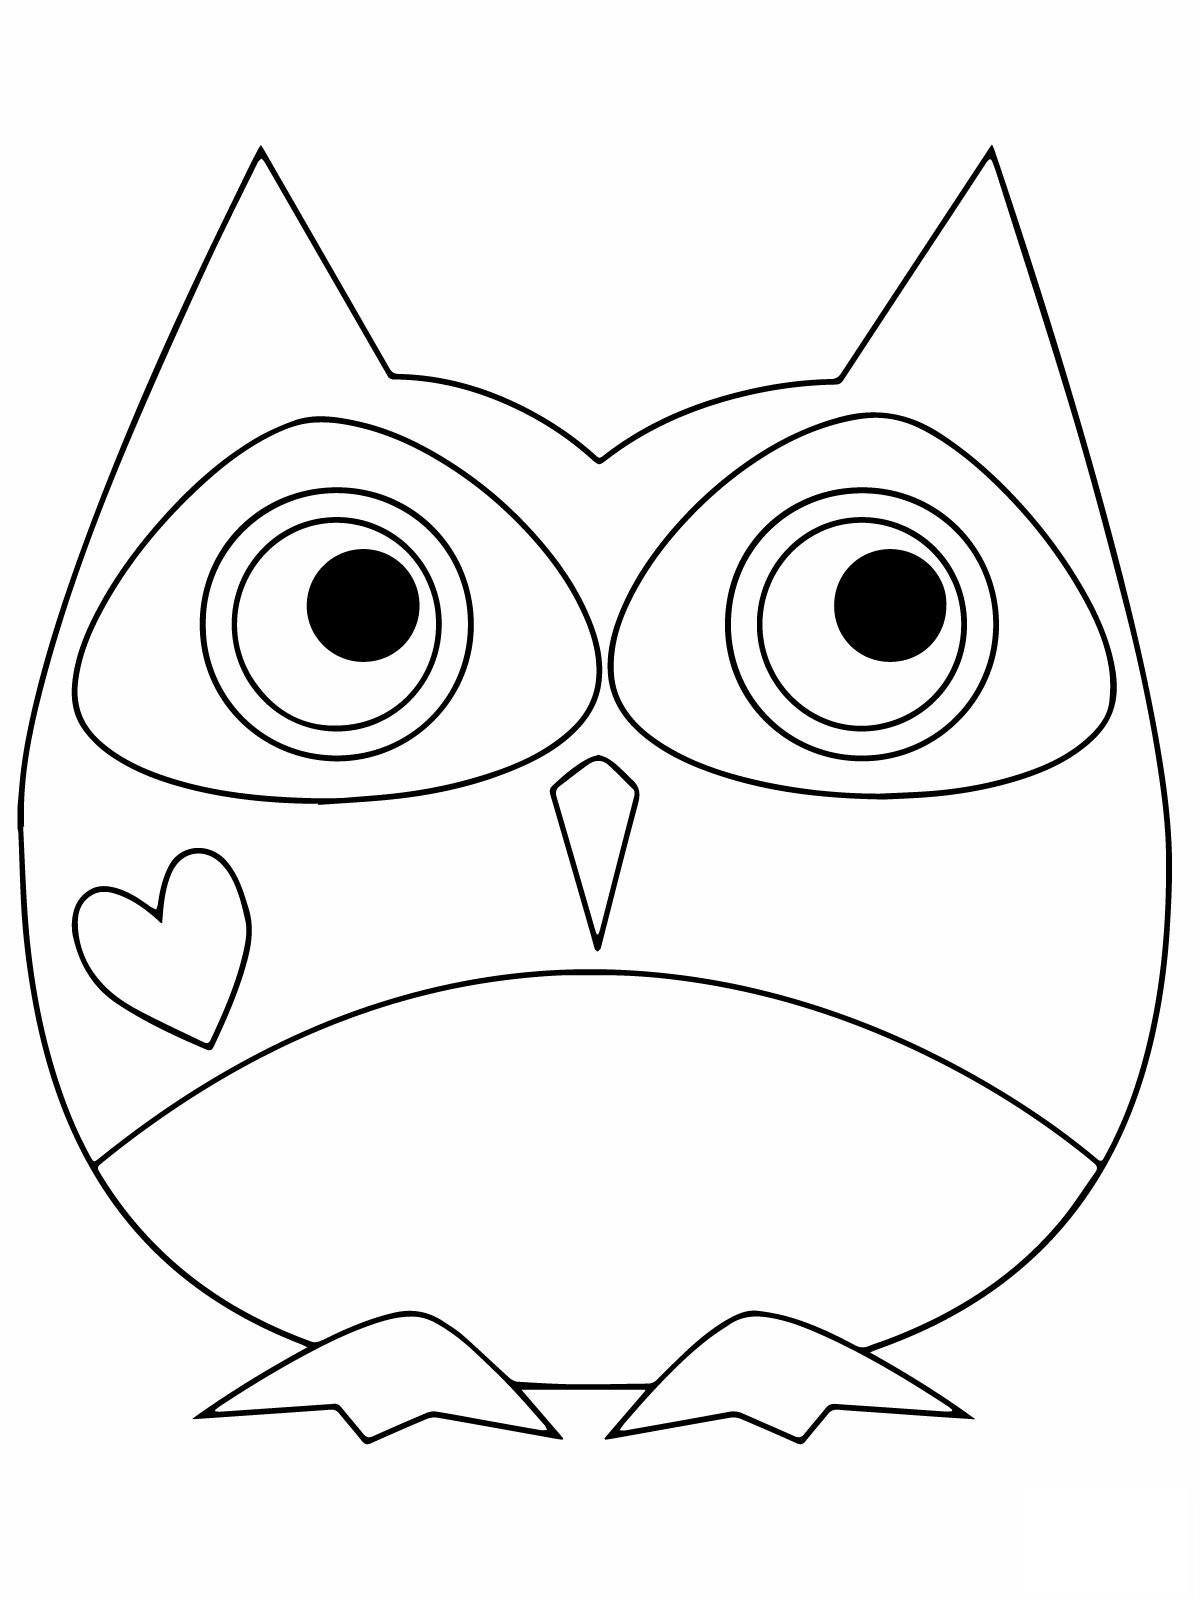 coloring pages owls owl coloring pages kidsuki coloring owls pages